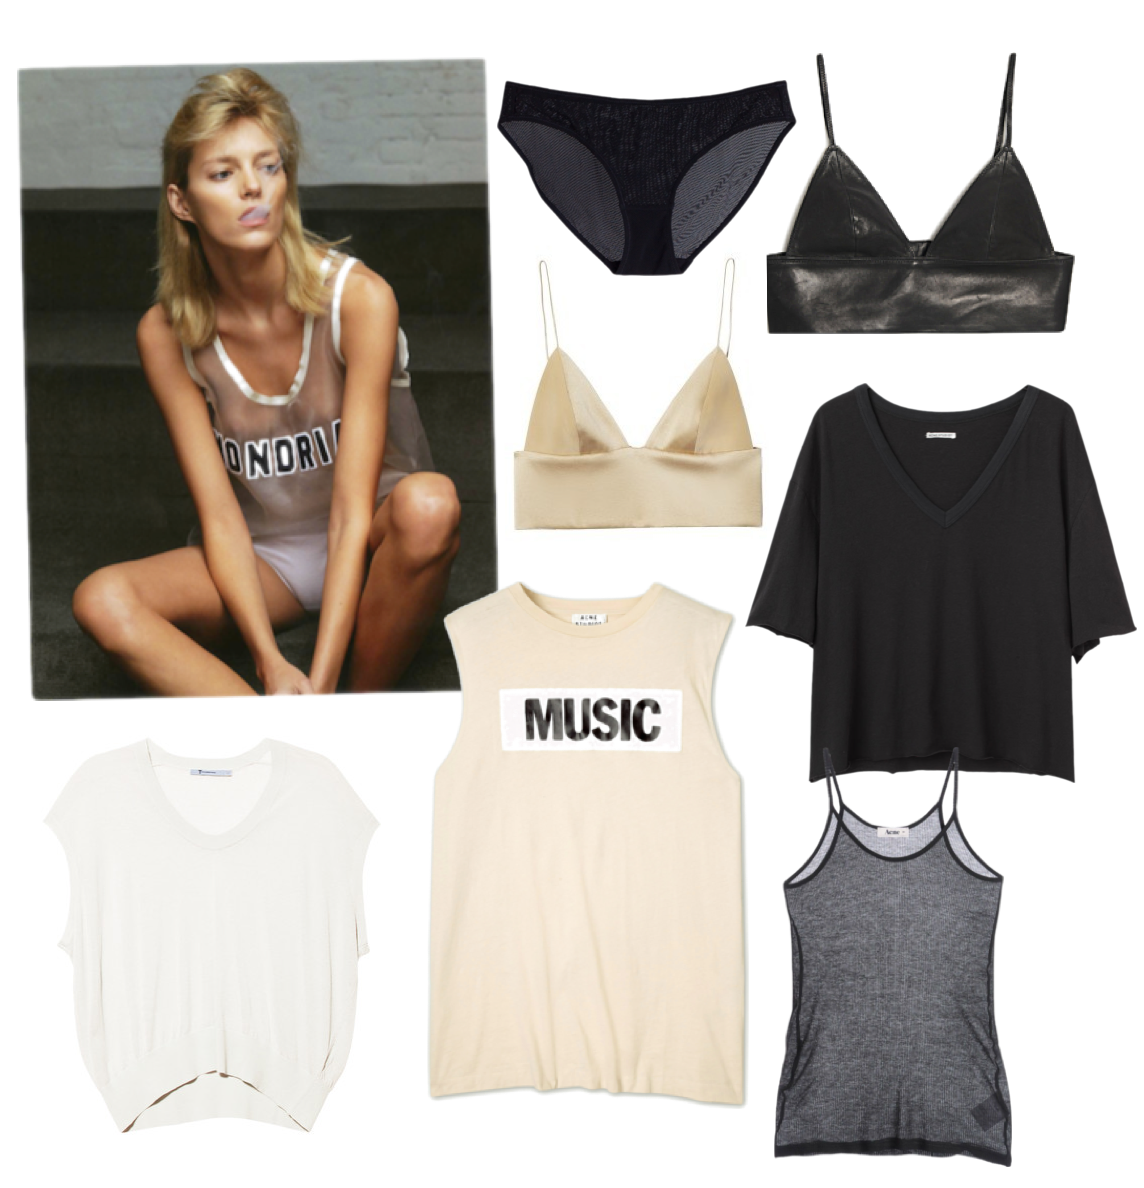 Anja Rubik T-shirt and bra: bralettes